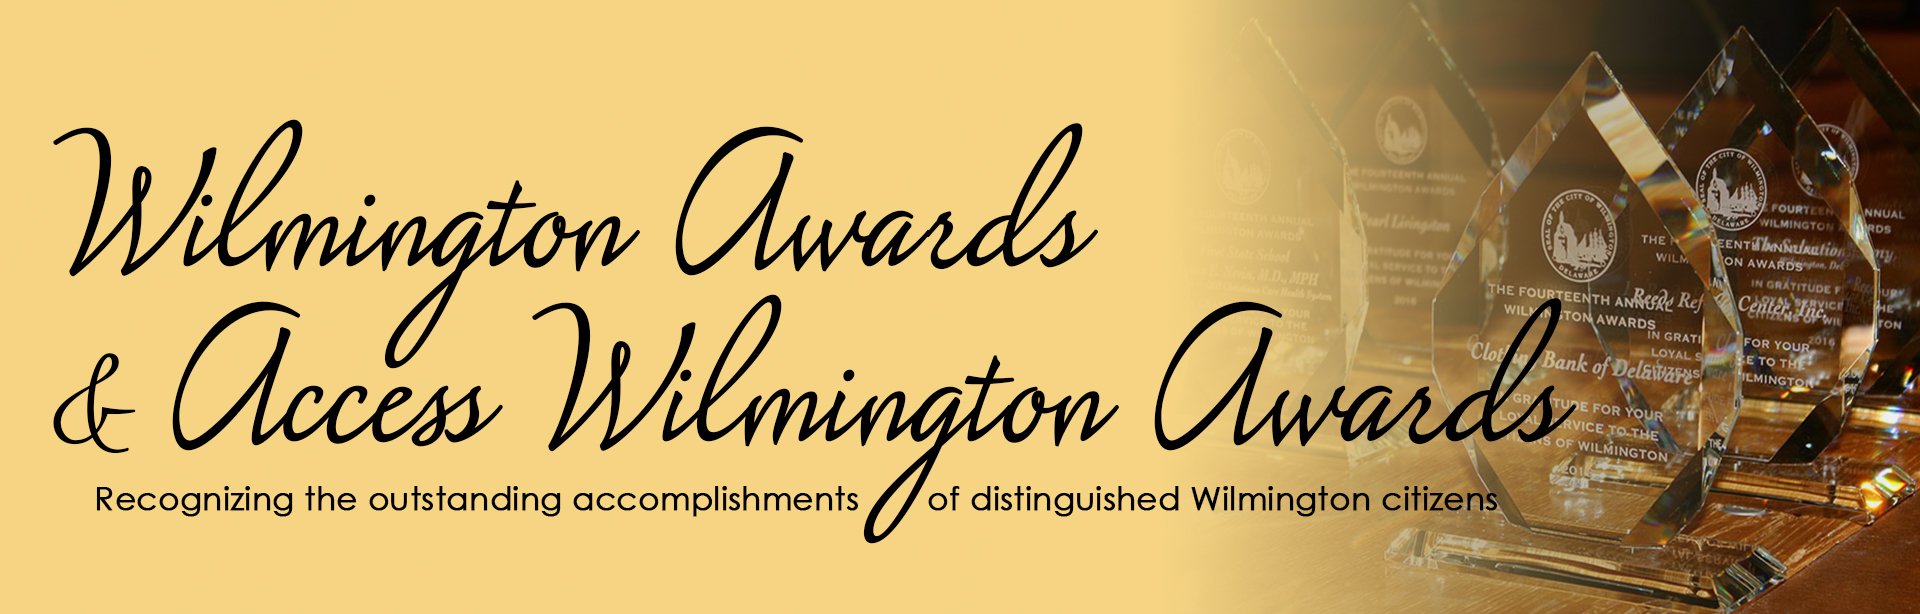 Wilmington Awards page banner